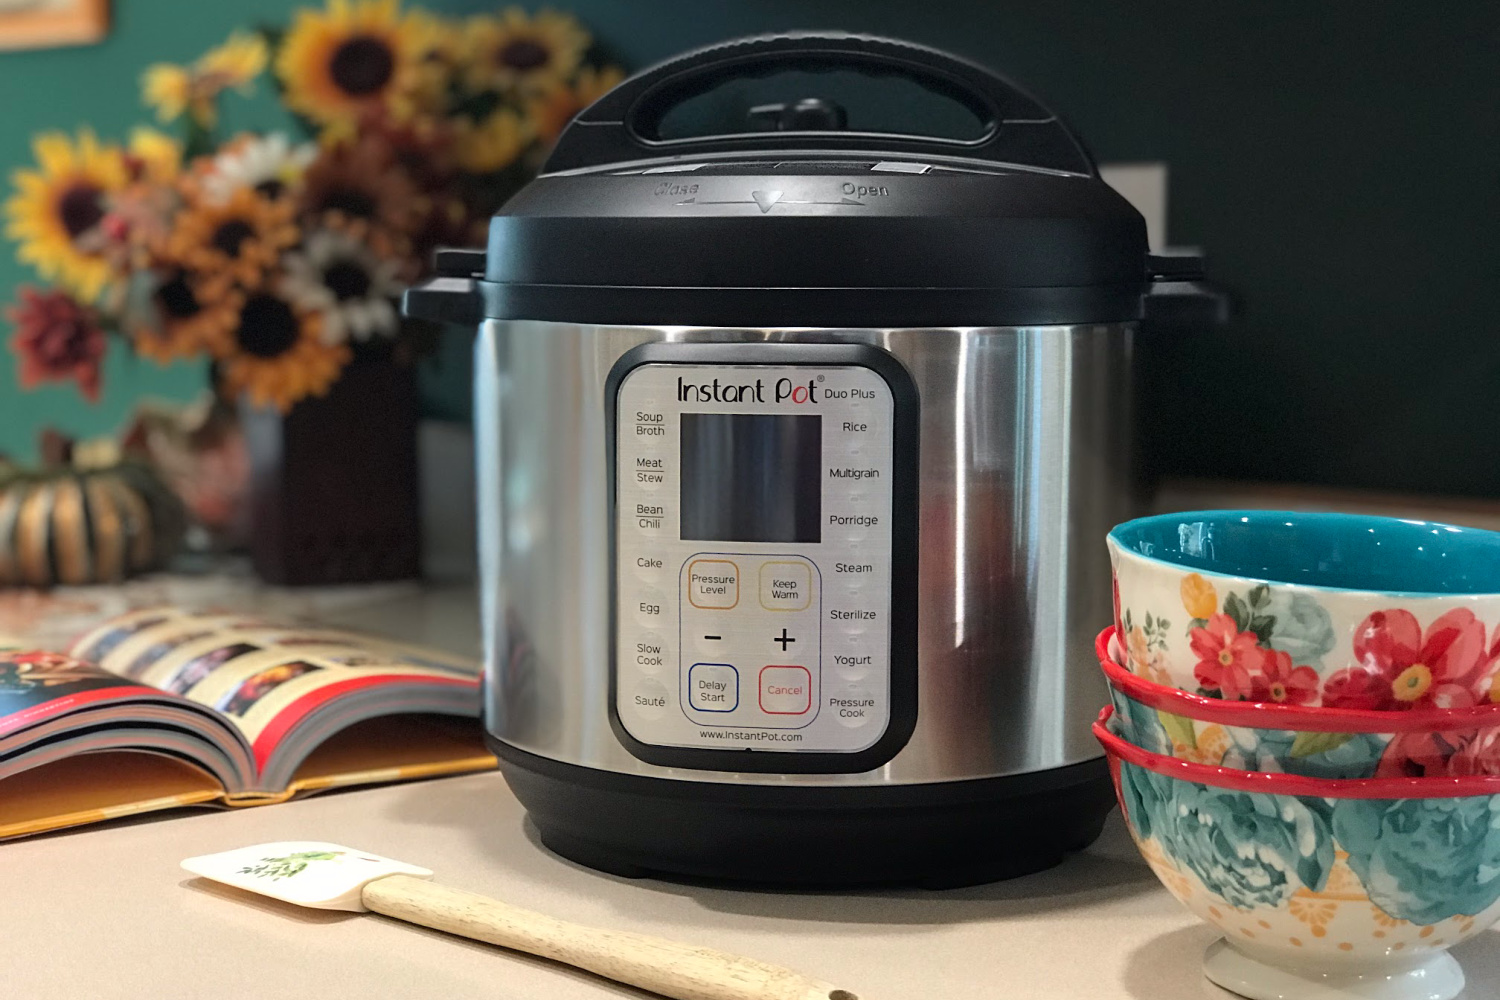 Instant pot a great gift for simple living